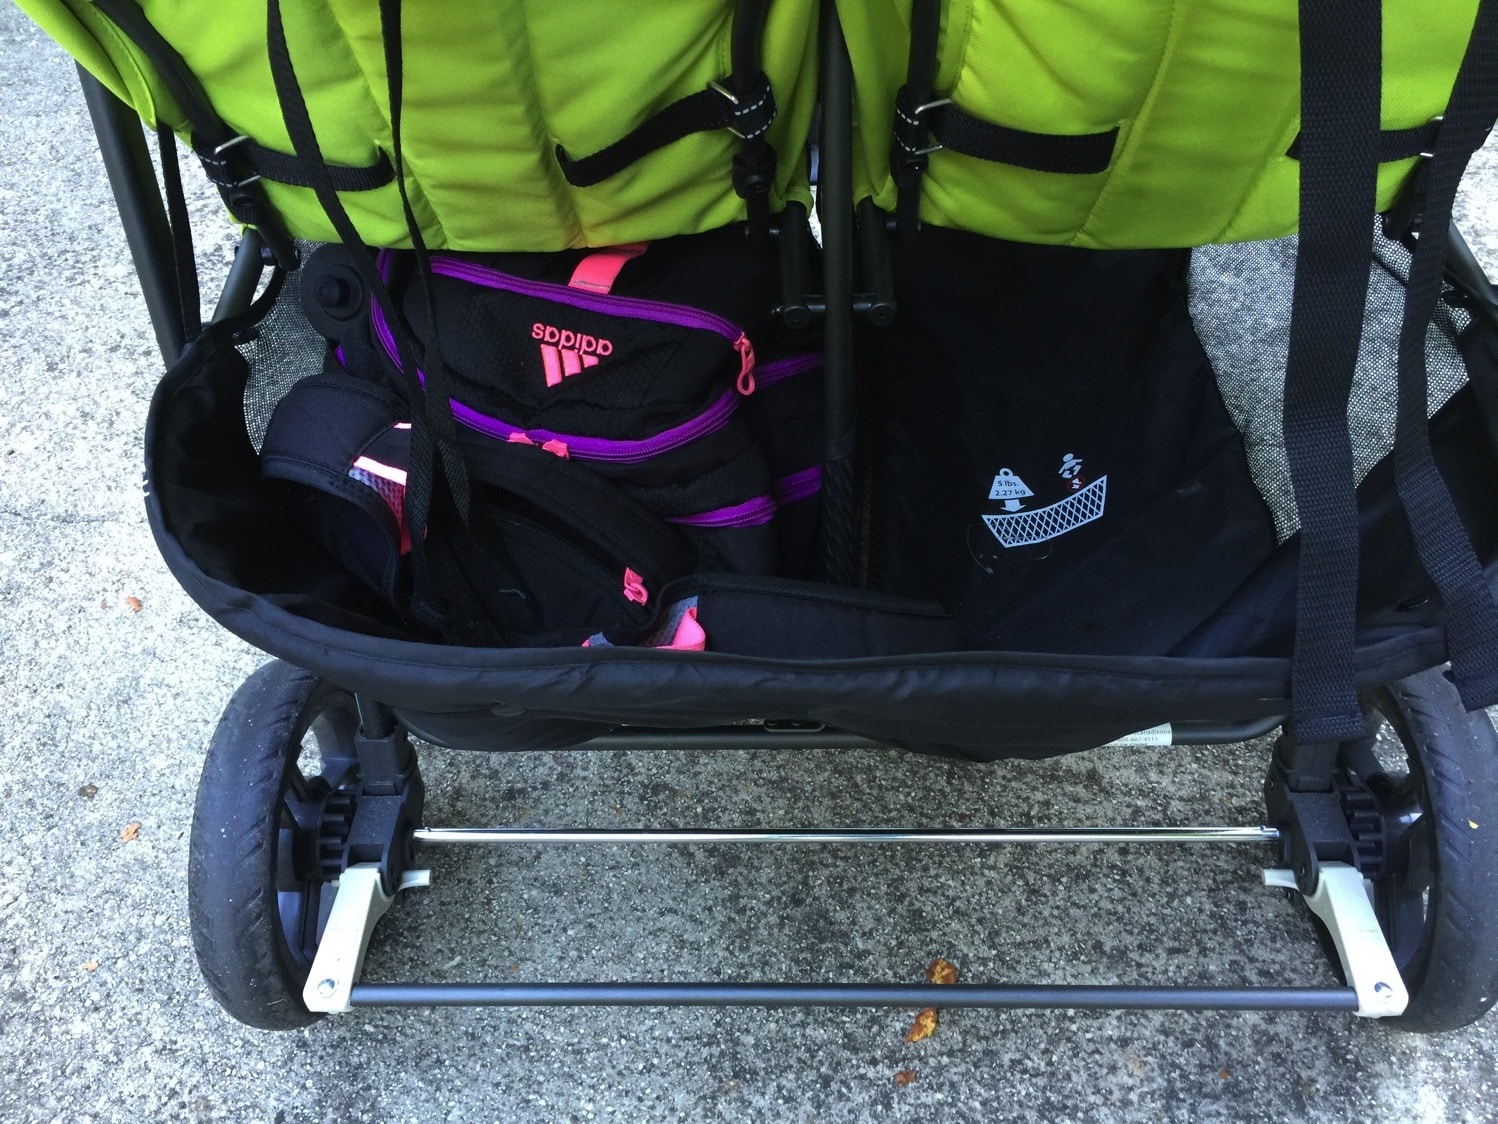 Giant backpack in basket of joovy scooter x2 with room to spare